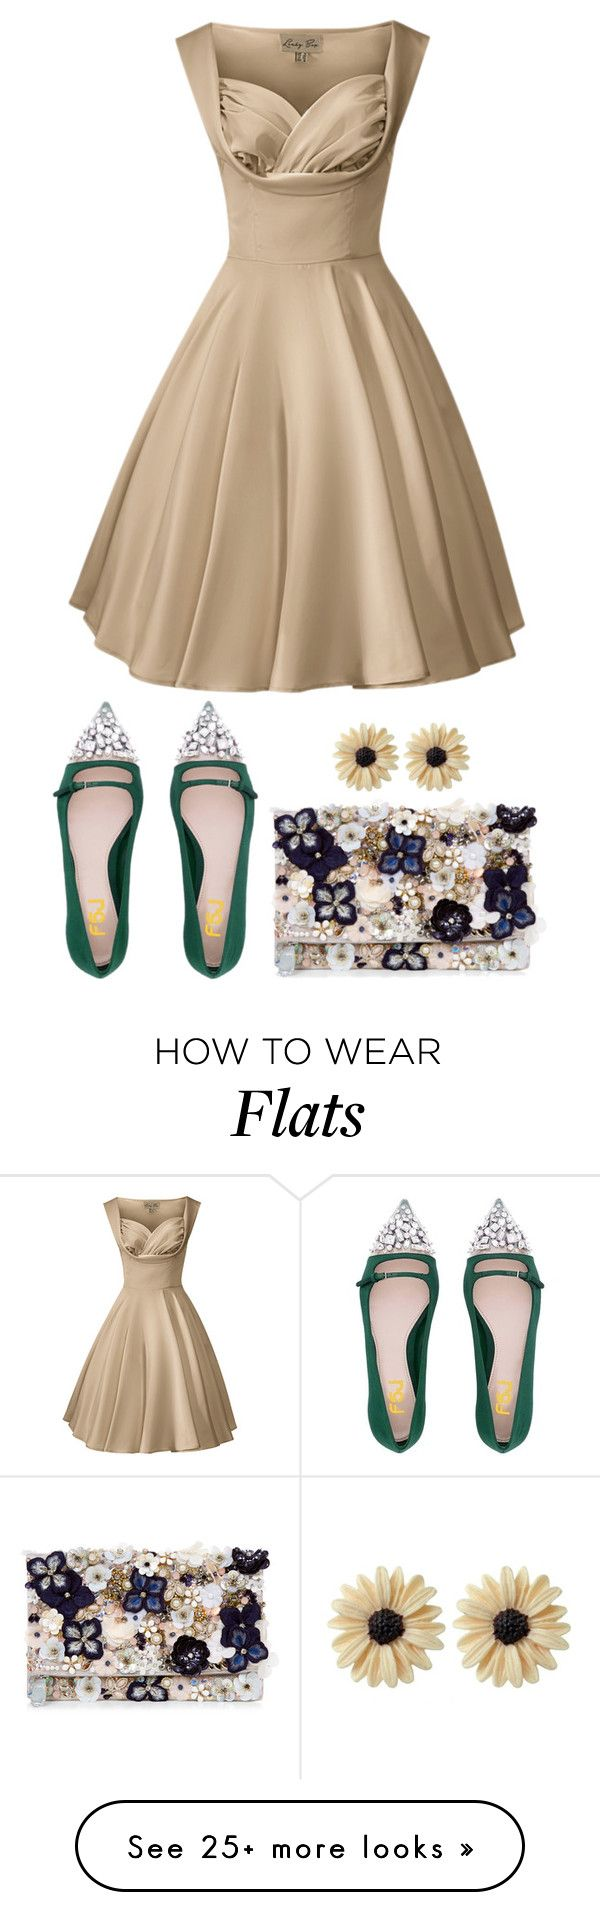 """Untitled #480"" by theequivocalcatholic on Polyvore featuring Accessorize and Rock 'N Rose"